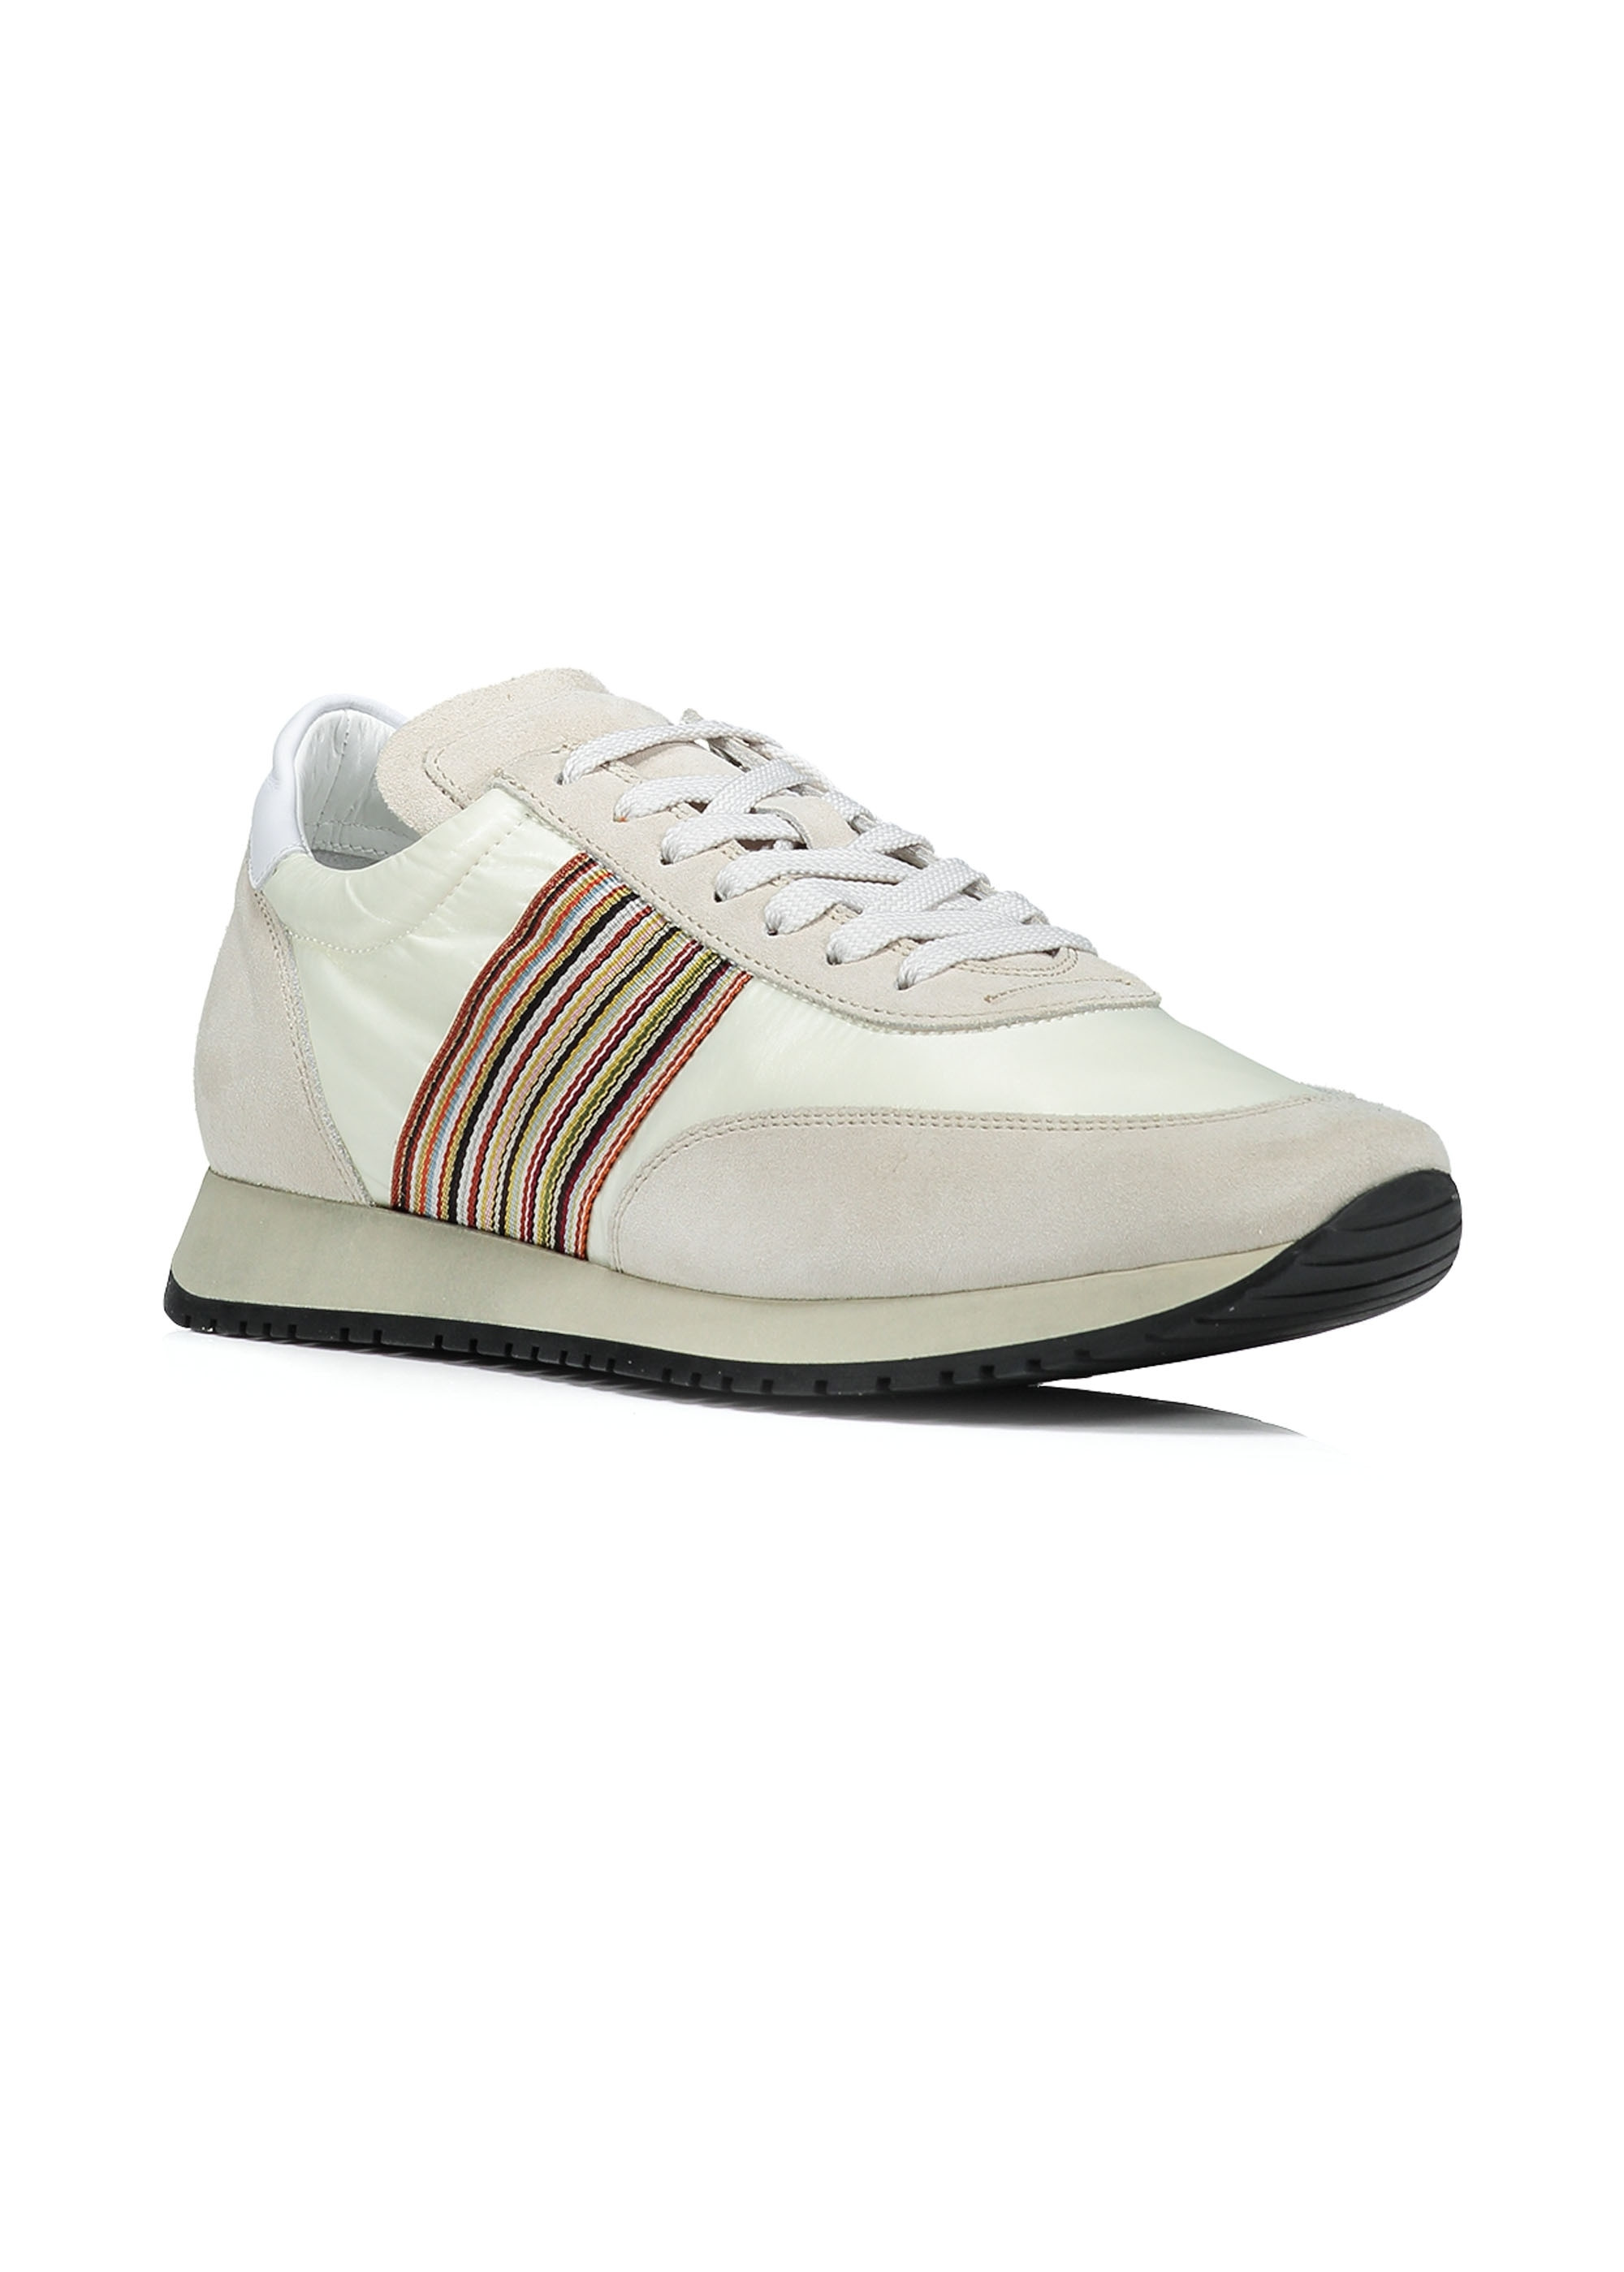 2d3c0d63e Paul Smith Apollo Shoe - White - Trainers from Triads UK